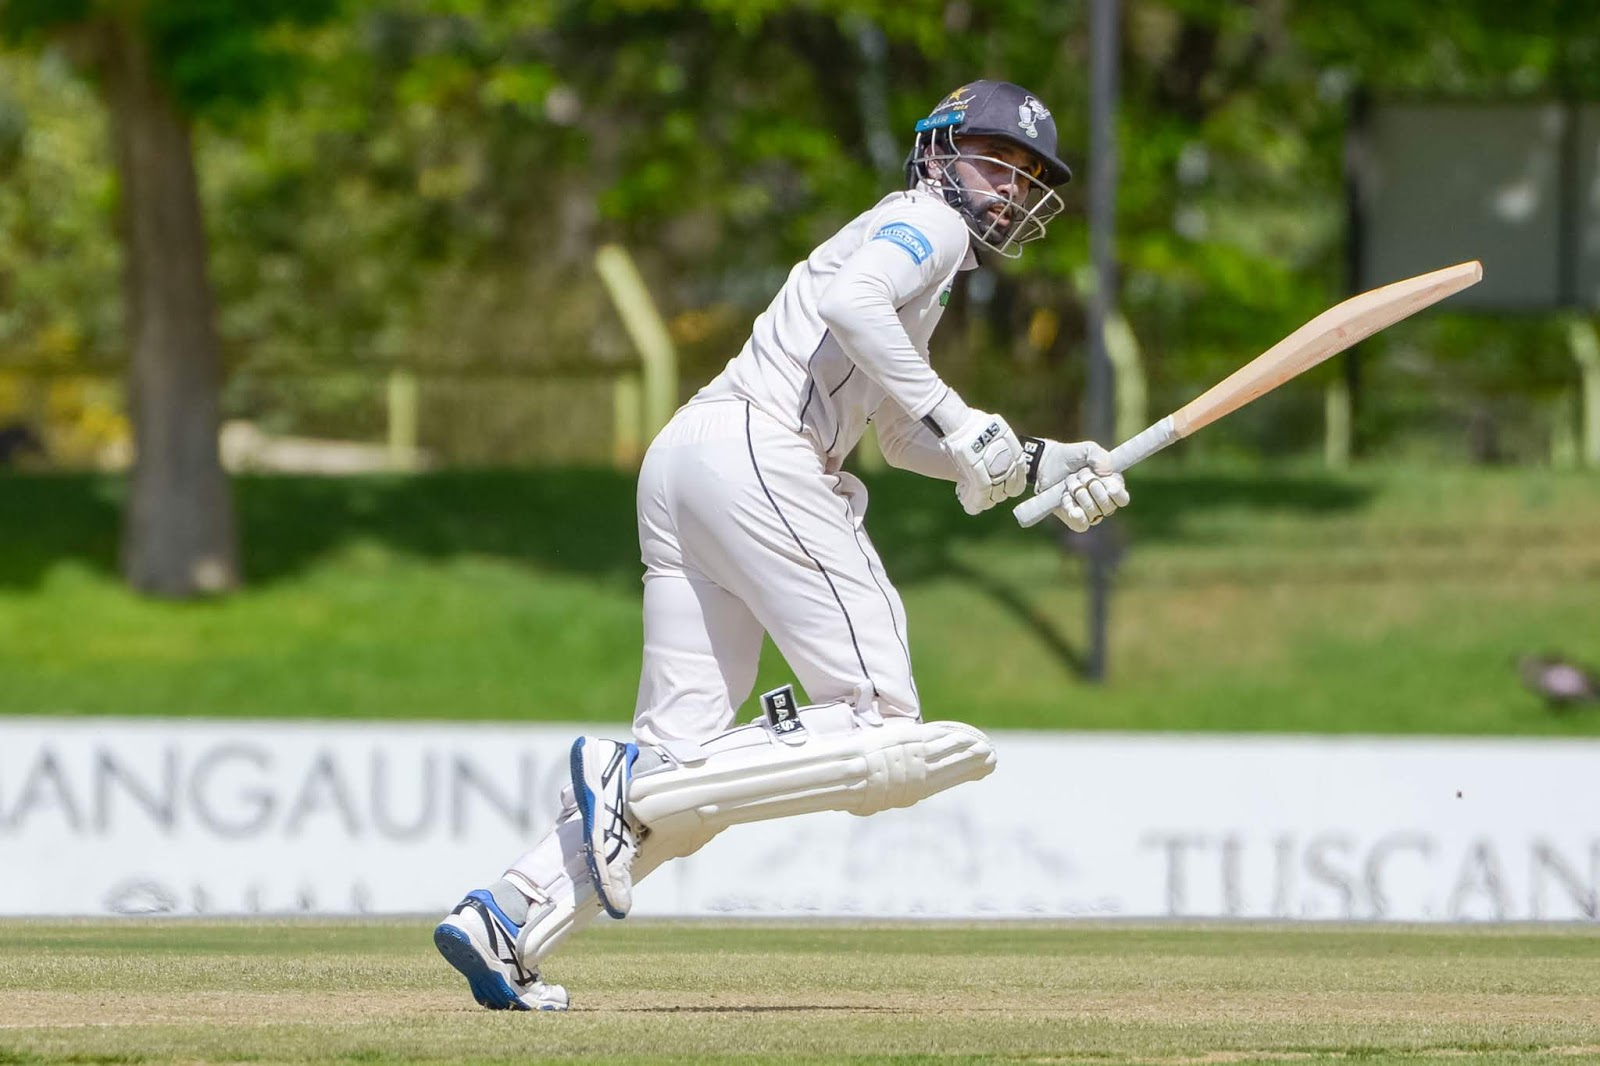 Cody Chetty batting for the Hollywoodbets Dolphins in the CSA 4-Day Franchise Series